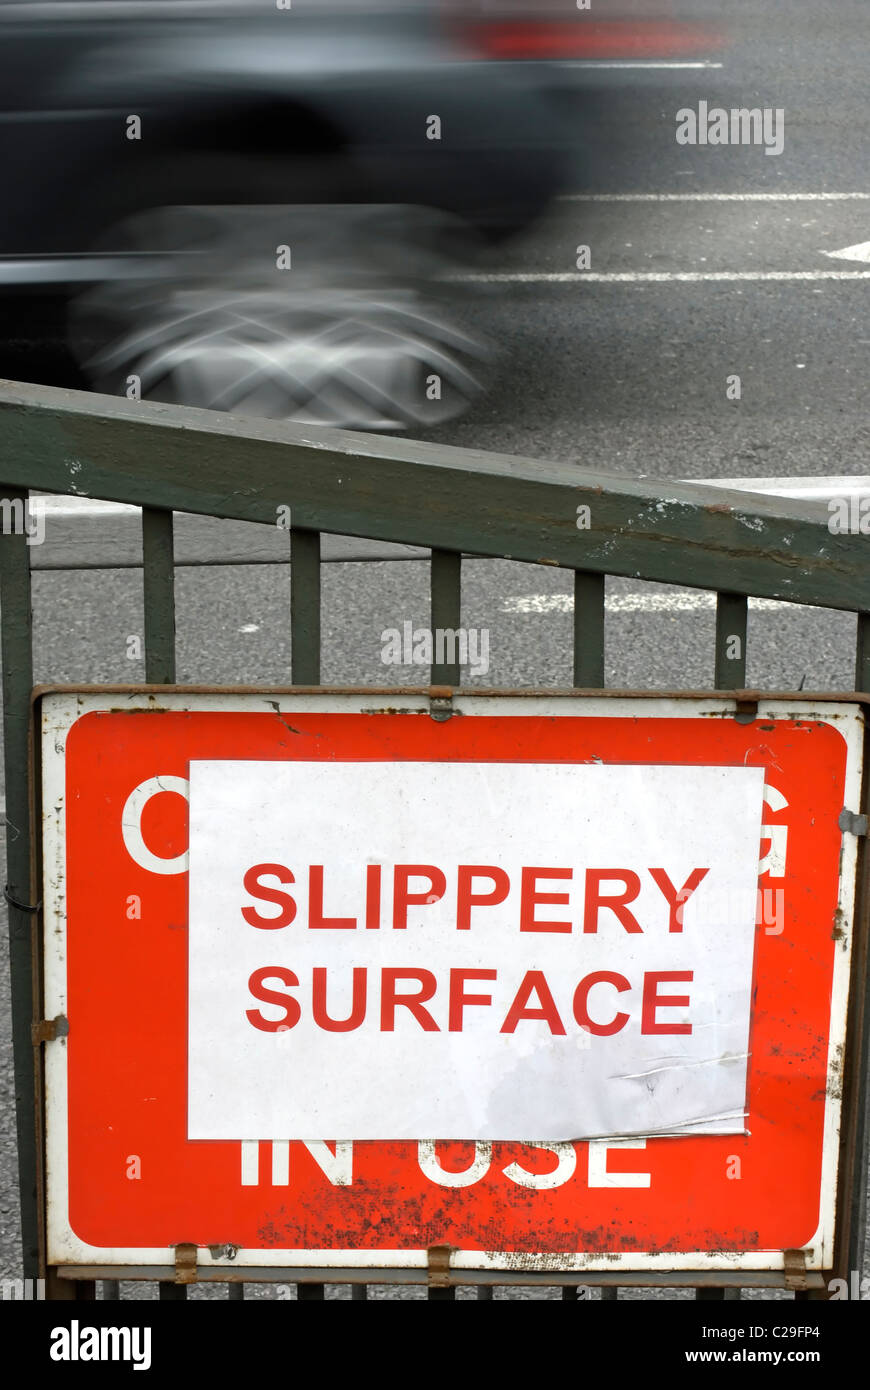 slippery surface sign beside a road in richmond upon thames, surrey, england - Stock Image